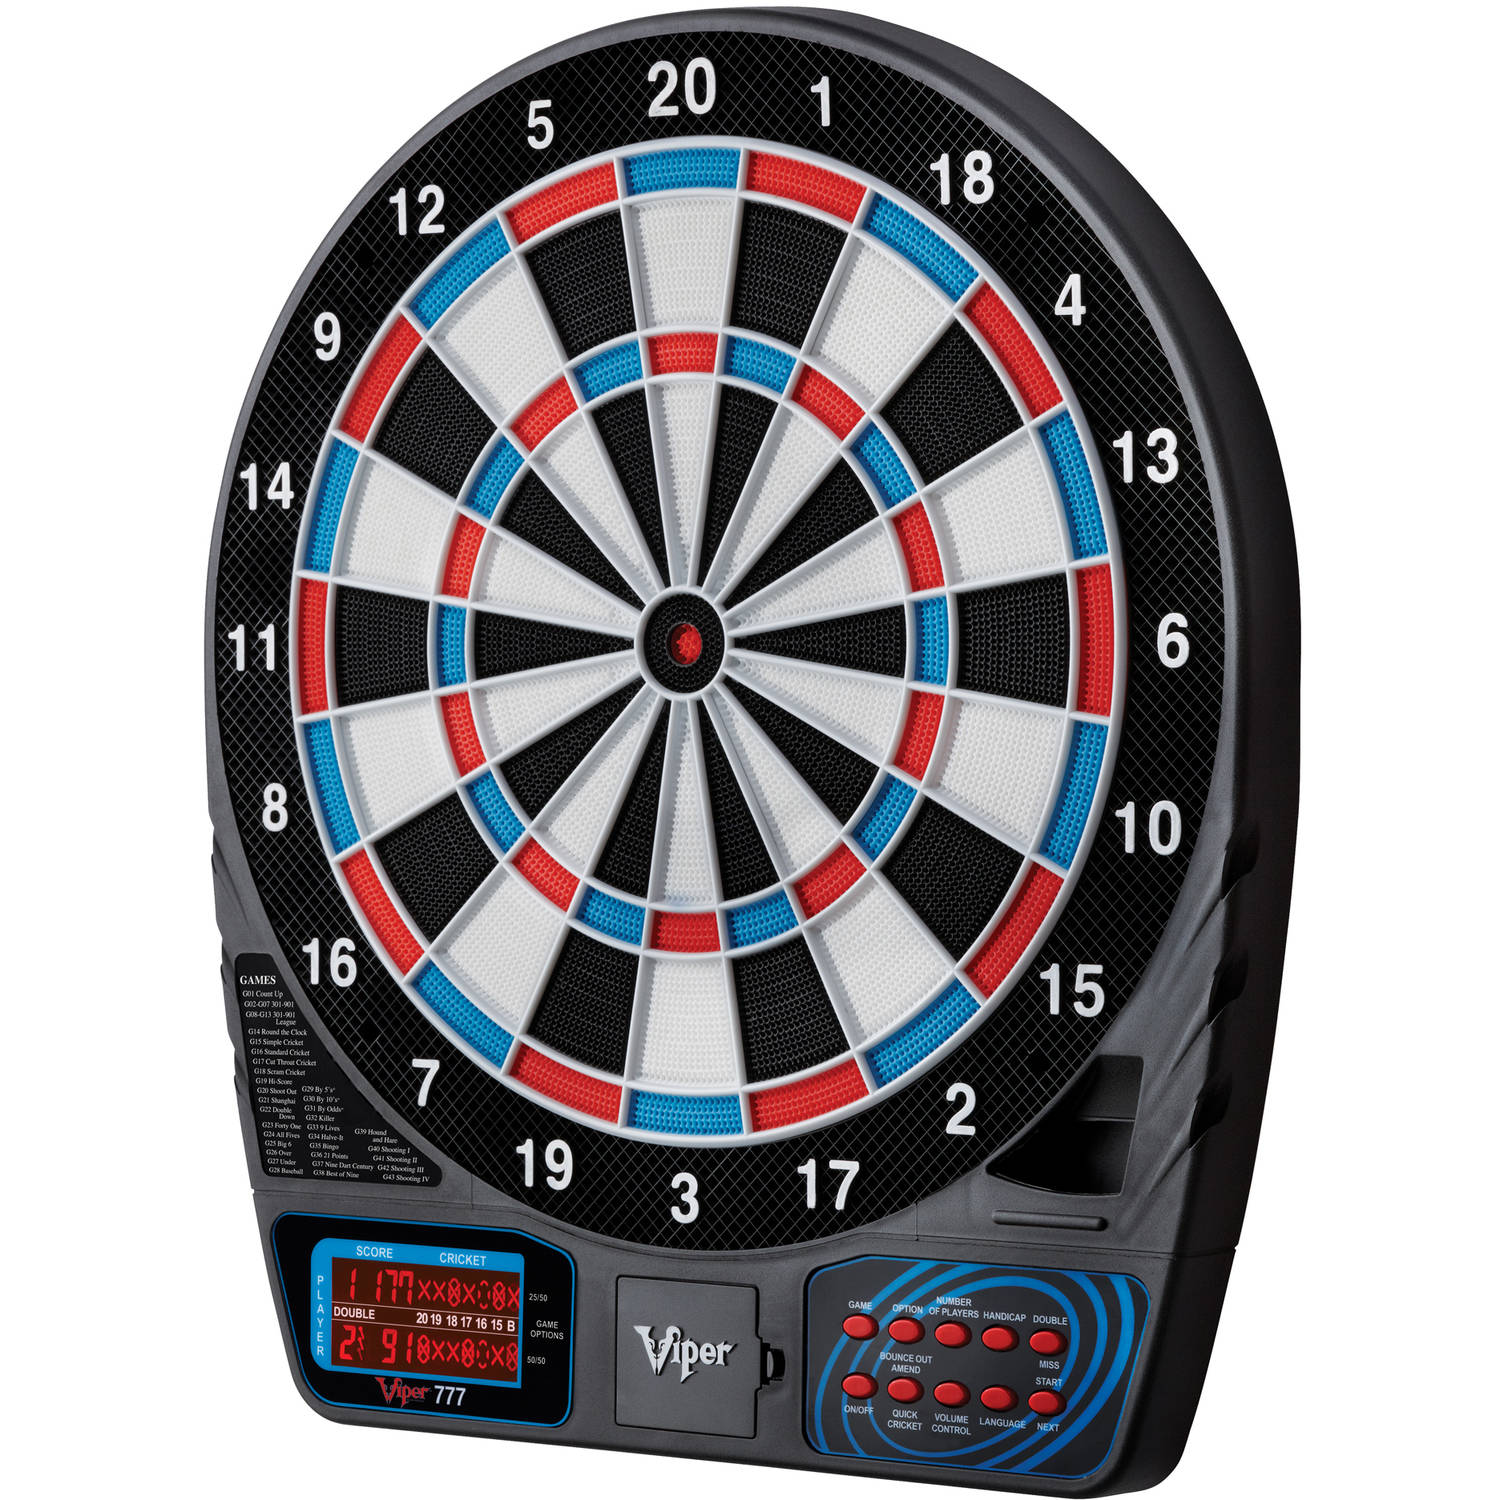 Viper 777 Electronic Dartboard by Great Lakes Darts Mfg, Inc.